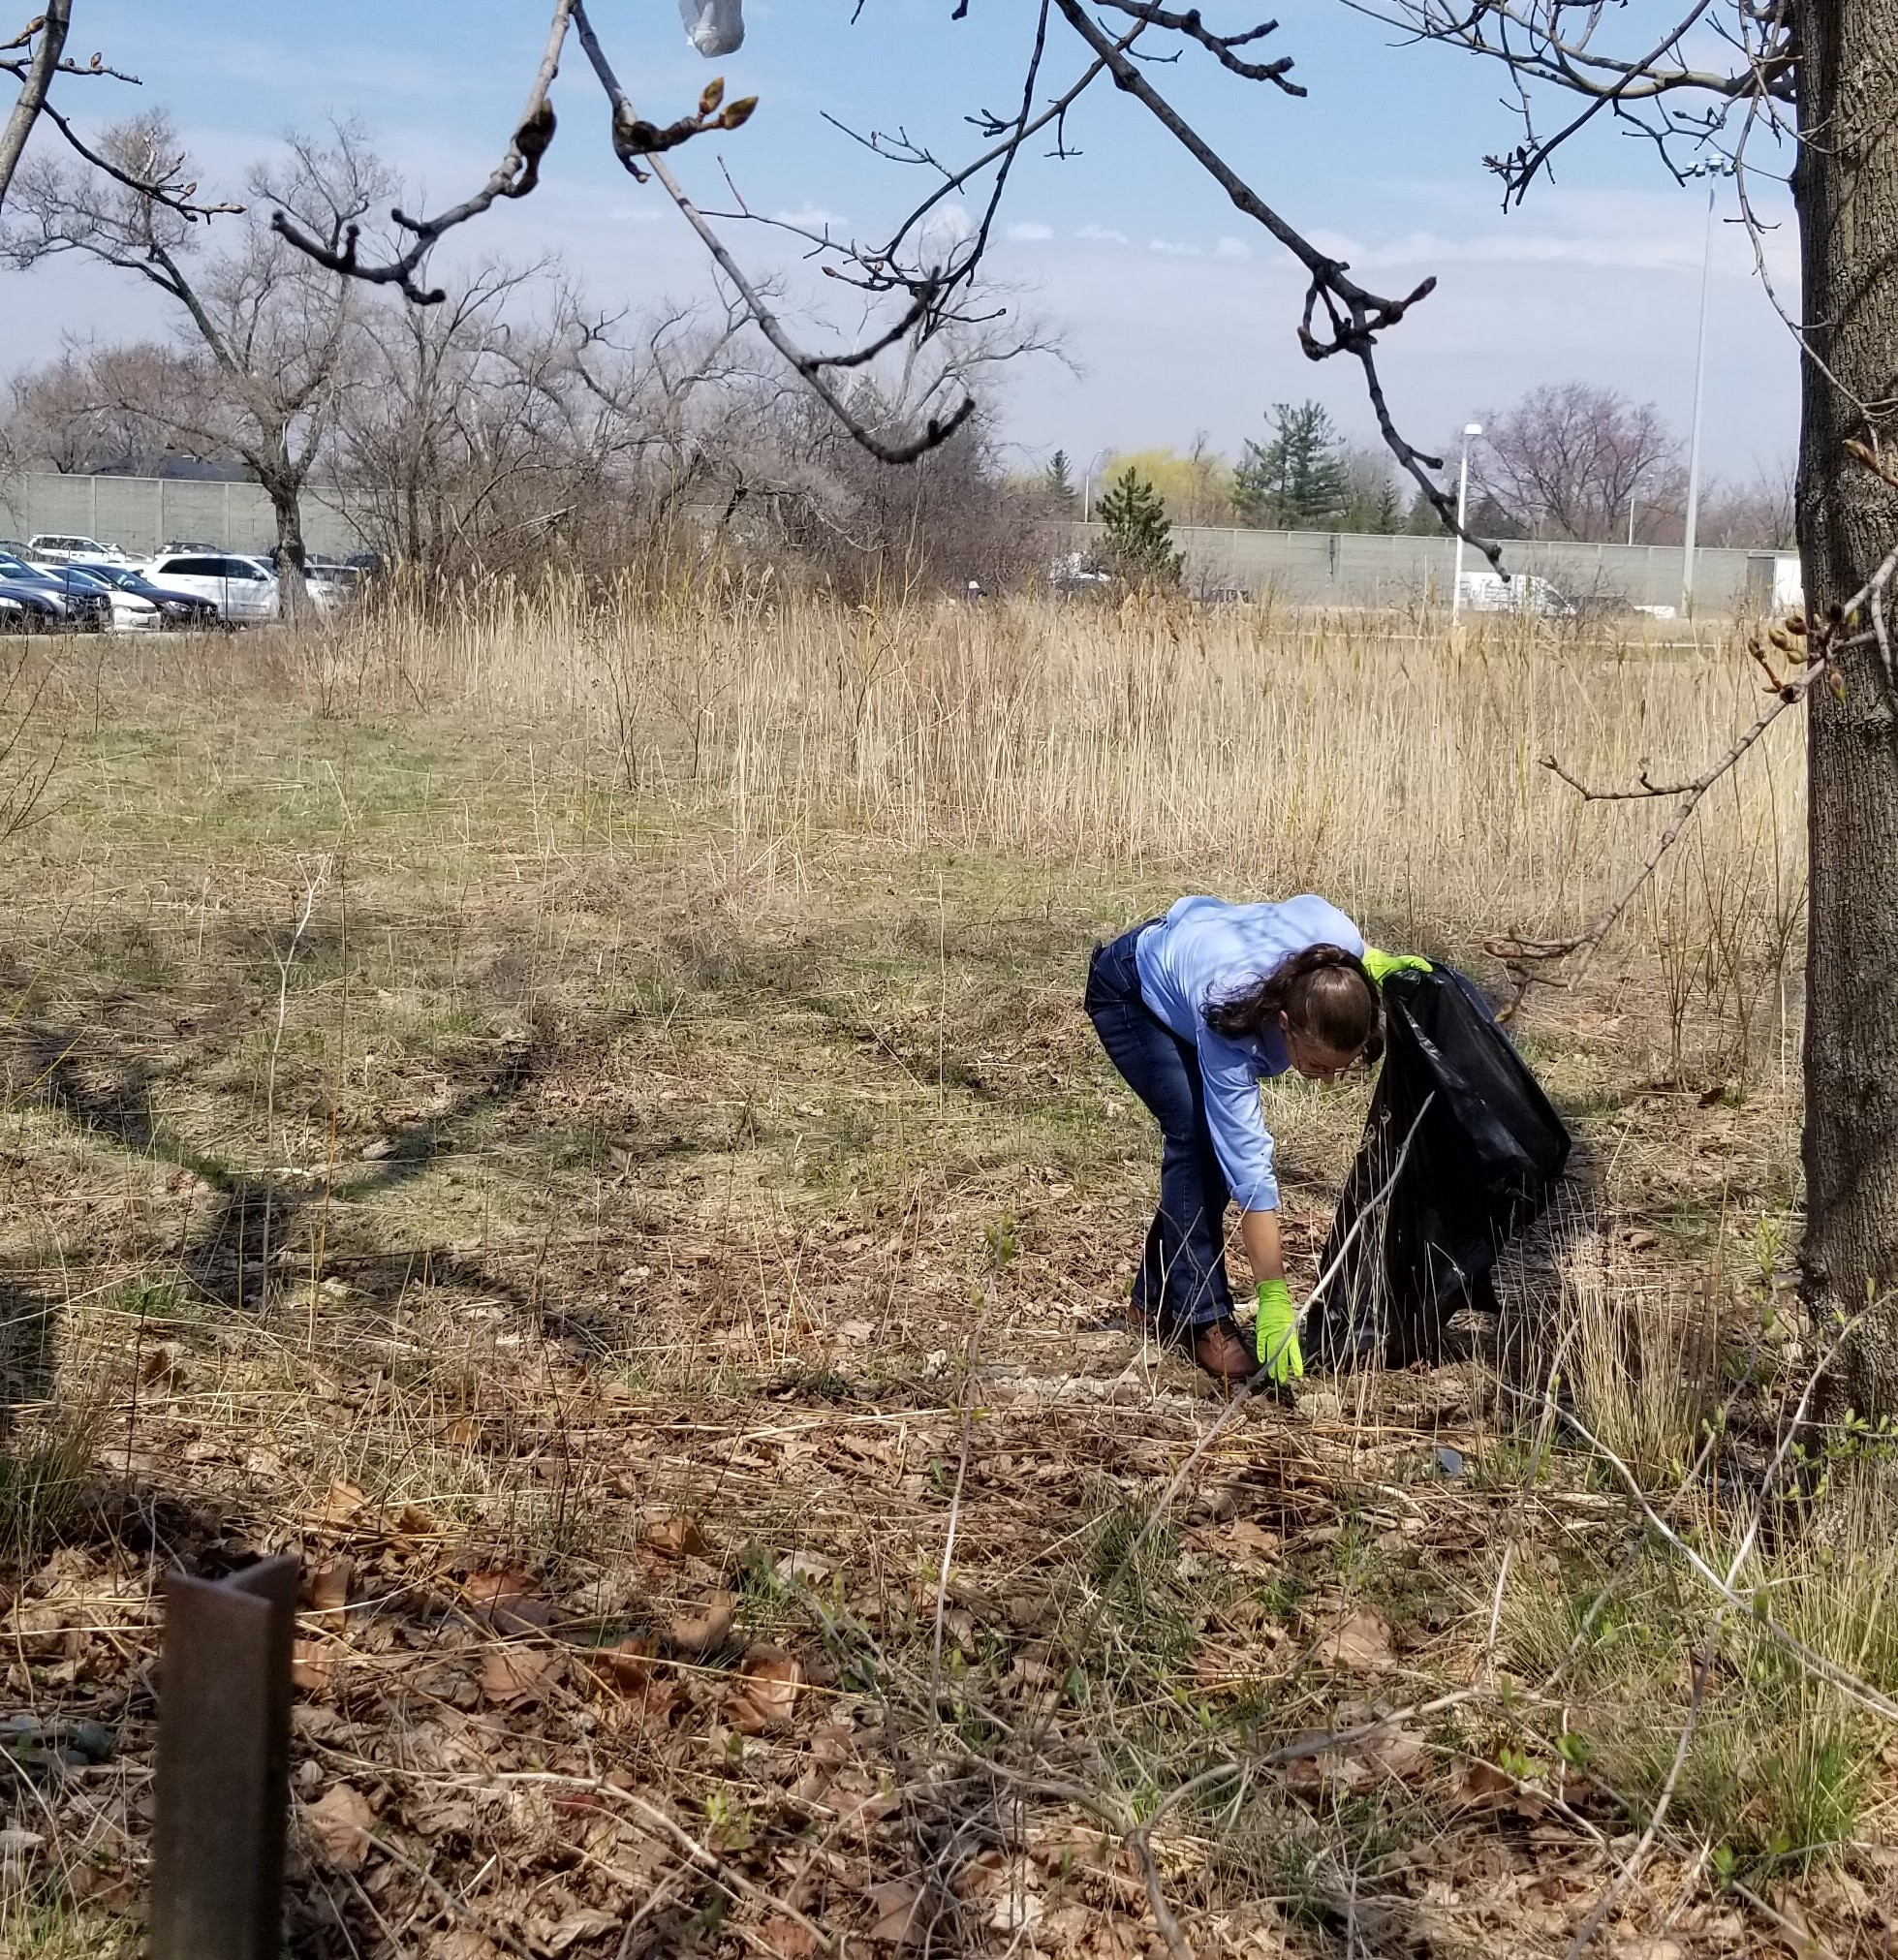 A woman holding a garbage bag bends over to pick up garbage. She is wearing green plastic gloves.